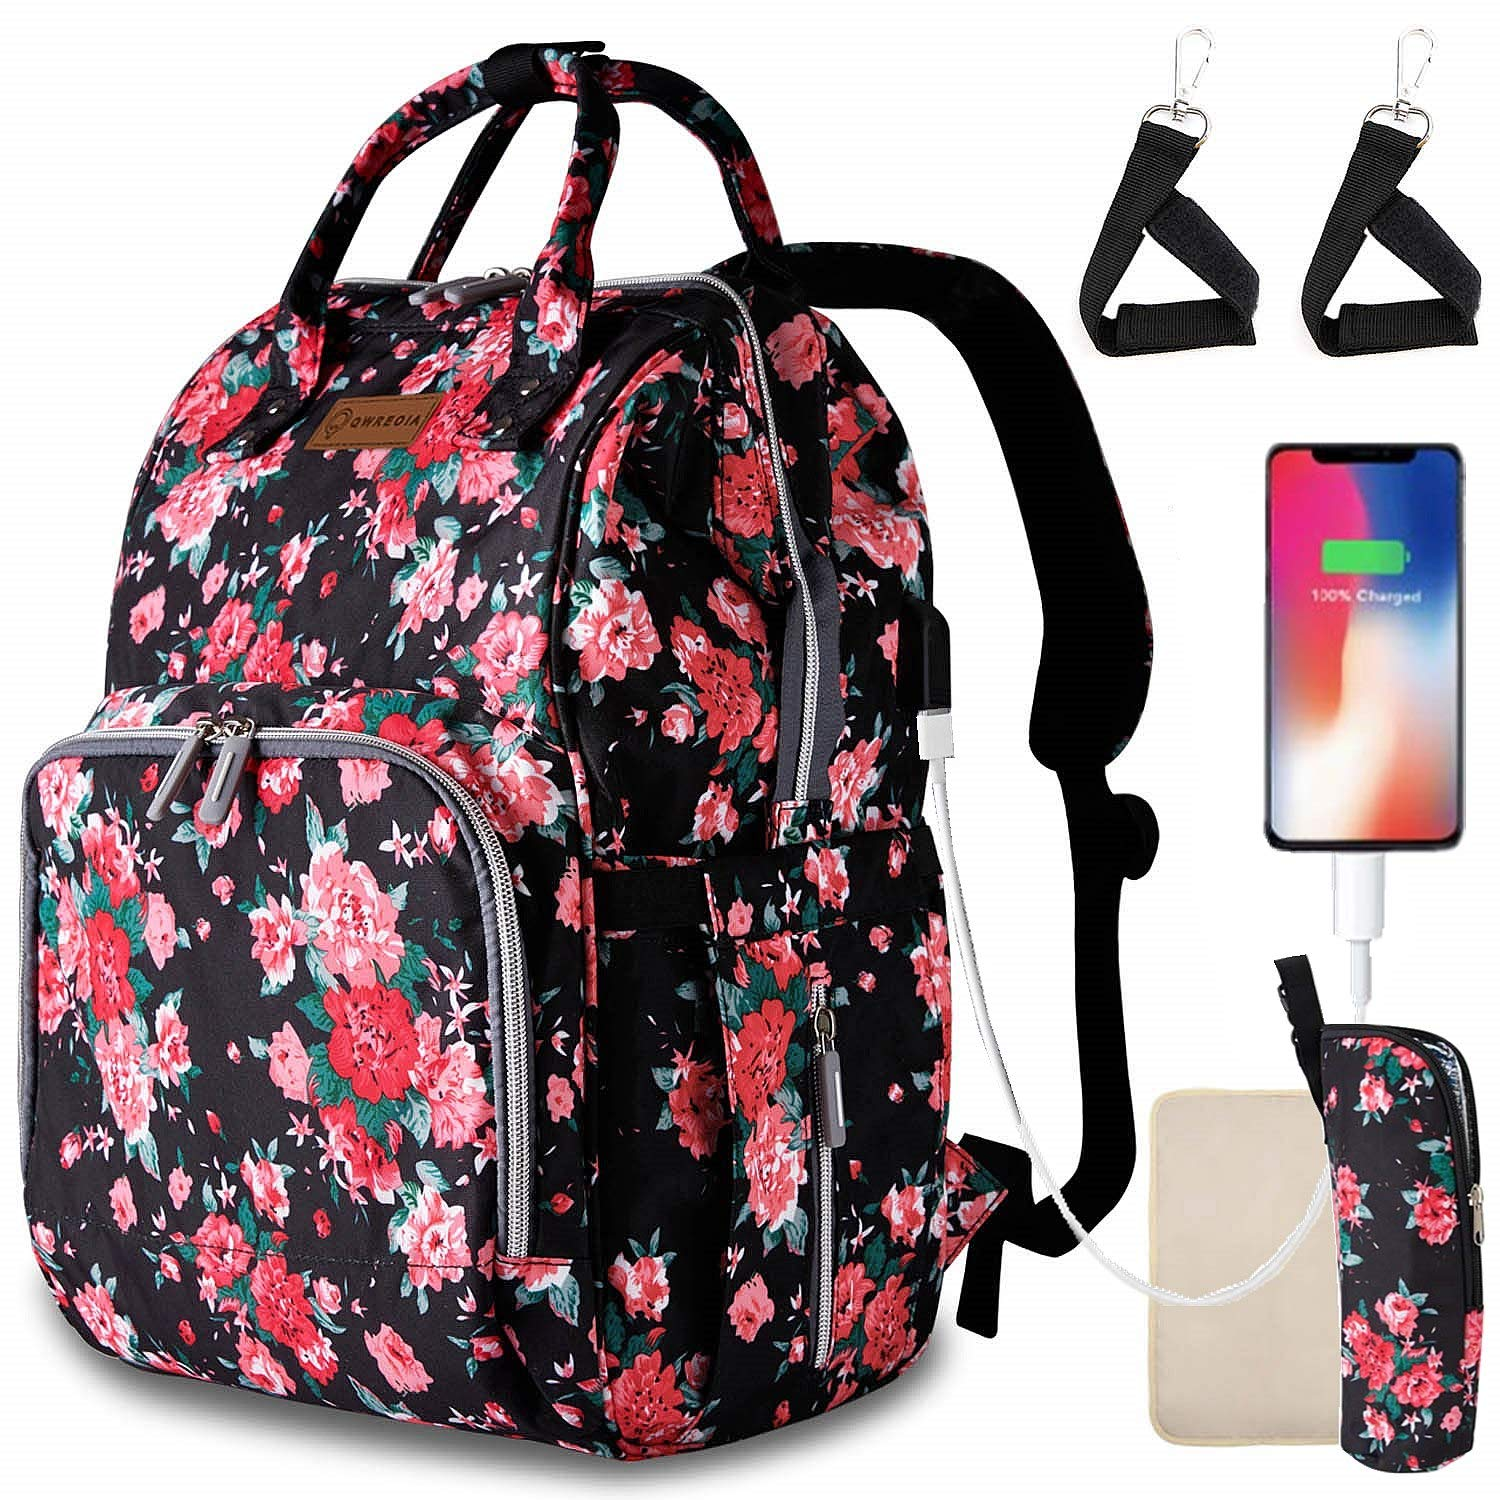 Diaper Bags for Baby Girl,Floral Baby Bag with USB Charging Port Stroller Straps and Insulated Pocket for Women/Girls/Mum/Toddler by Qwreoia (Red Flower Pattern)